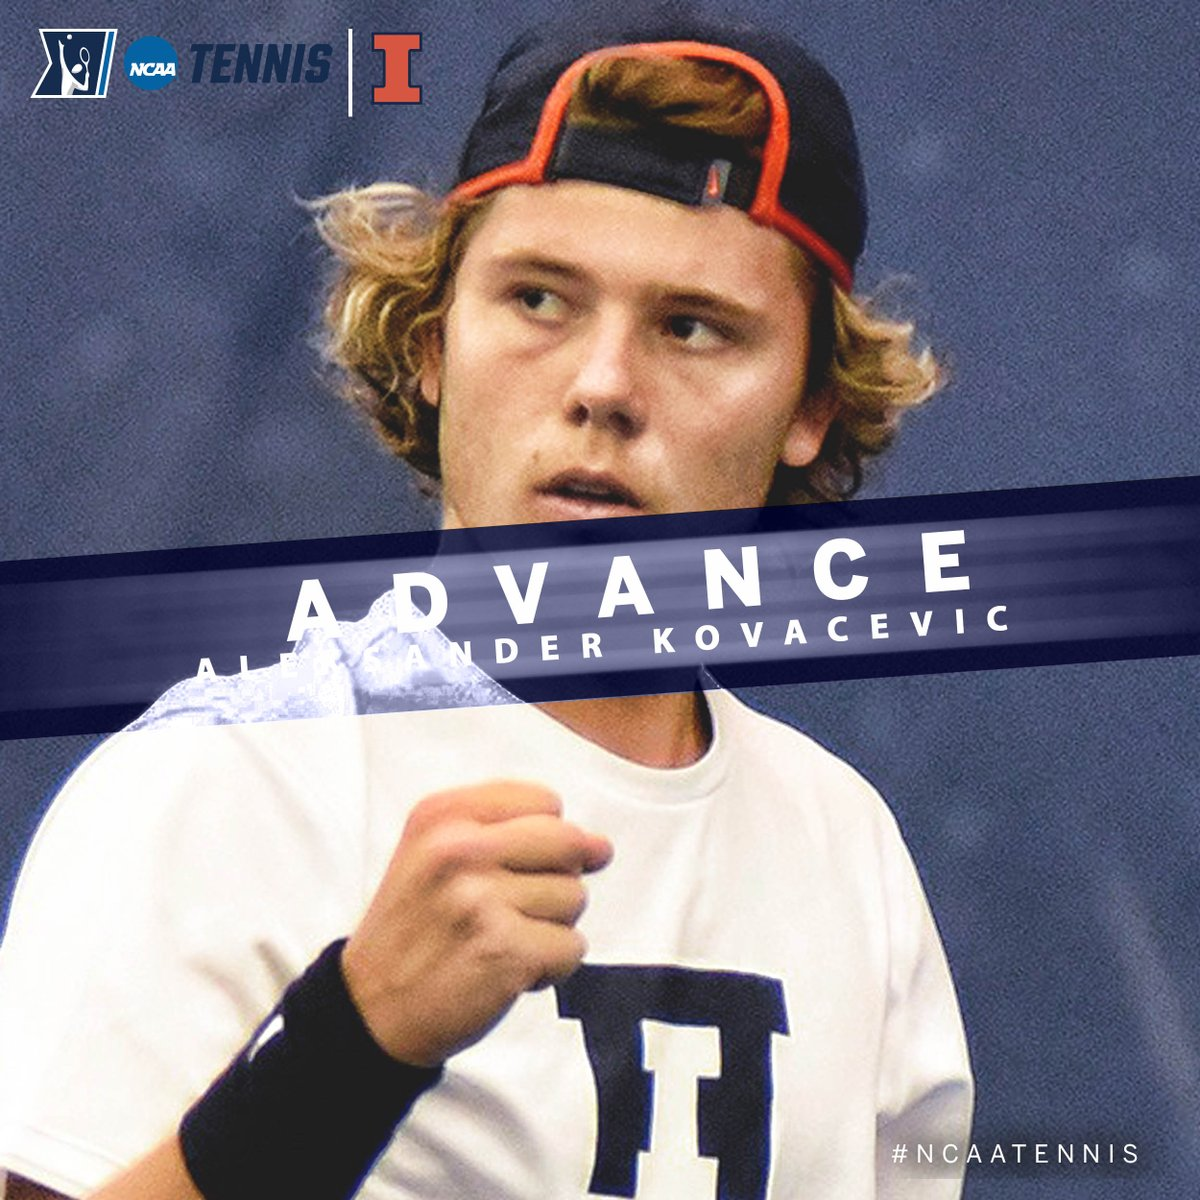 Aleksander Kovacevic of @IlliniMTennis advanced to the @NCAATennis Second Round after a6-3, 6-3 victory over Guanarteme Nuez, UT Arlington. #B1GMTennis